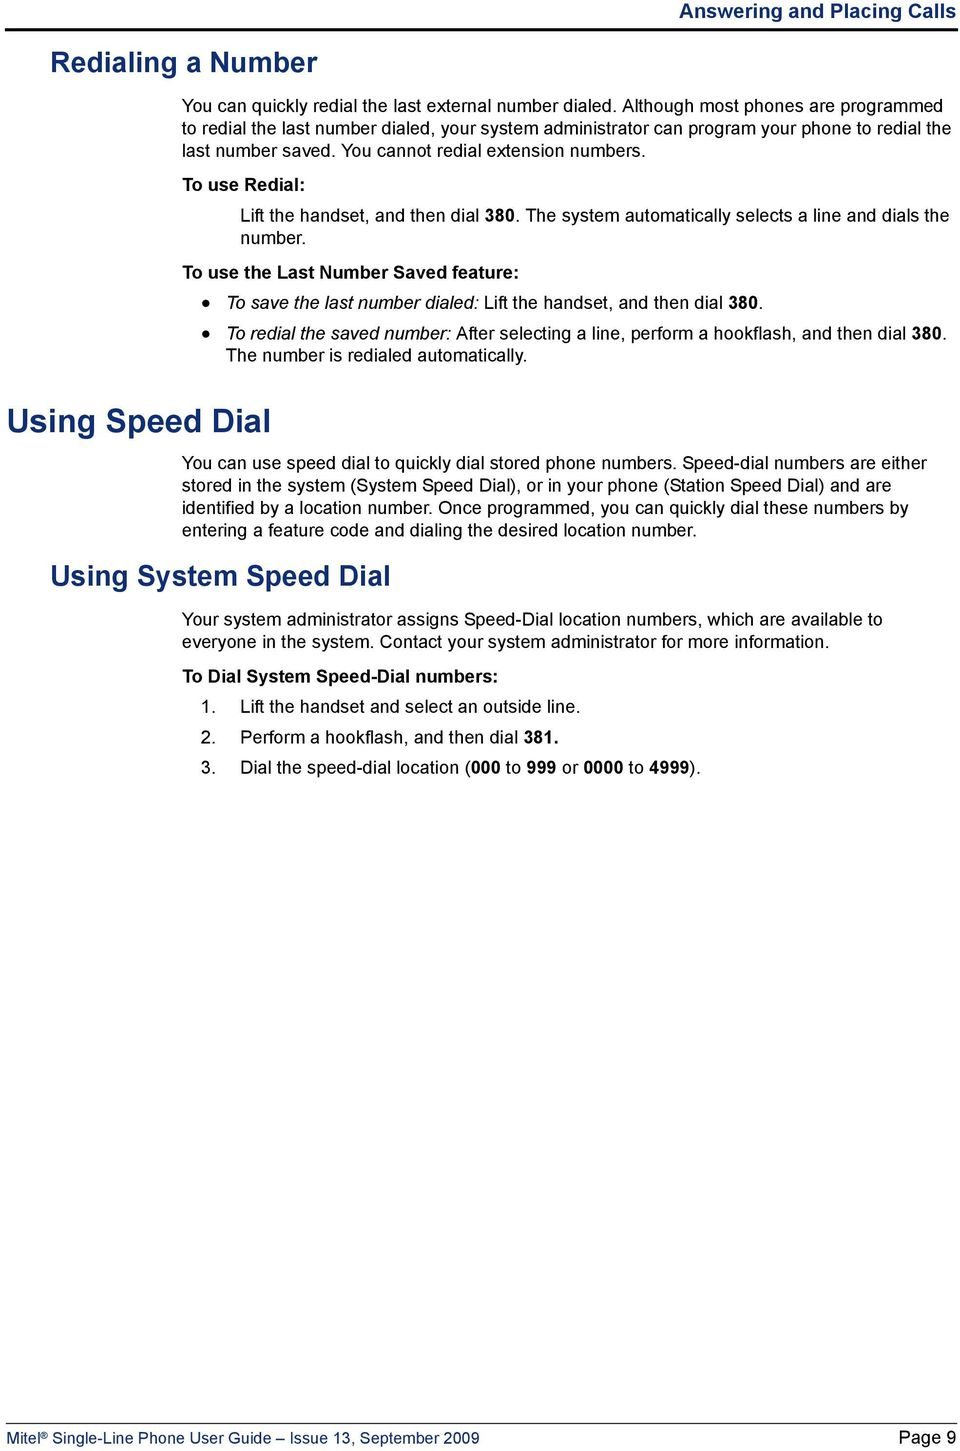 To use Redial: Lift the handset, and then dial 380. The system automatically selects a line and dials the number.